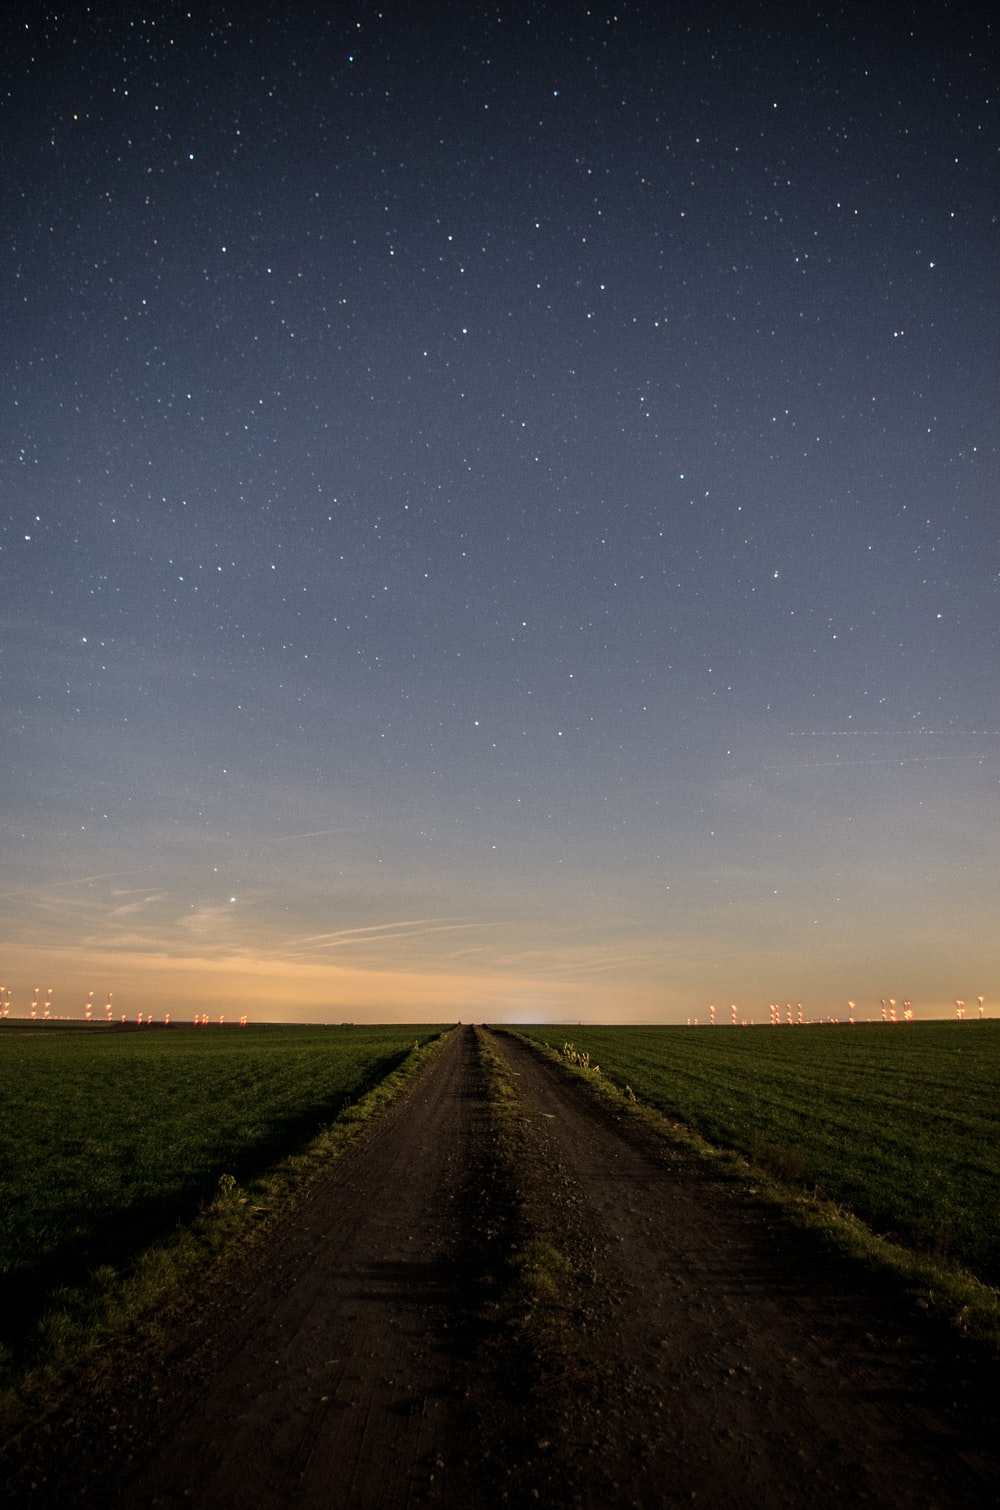 green grass field under blue sky during night time